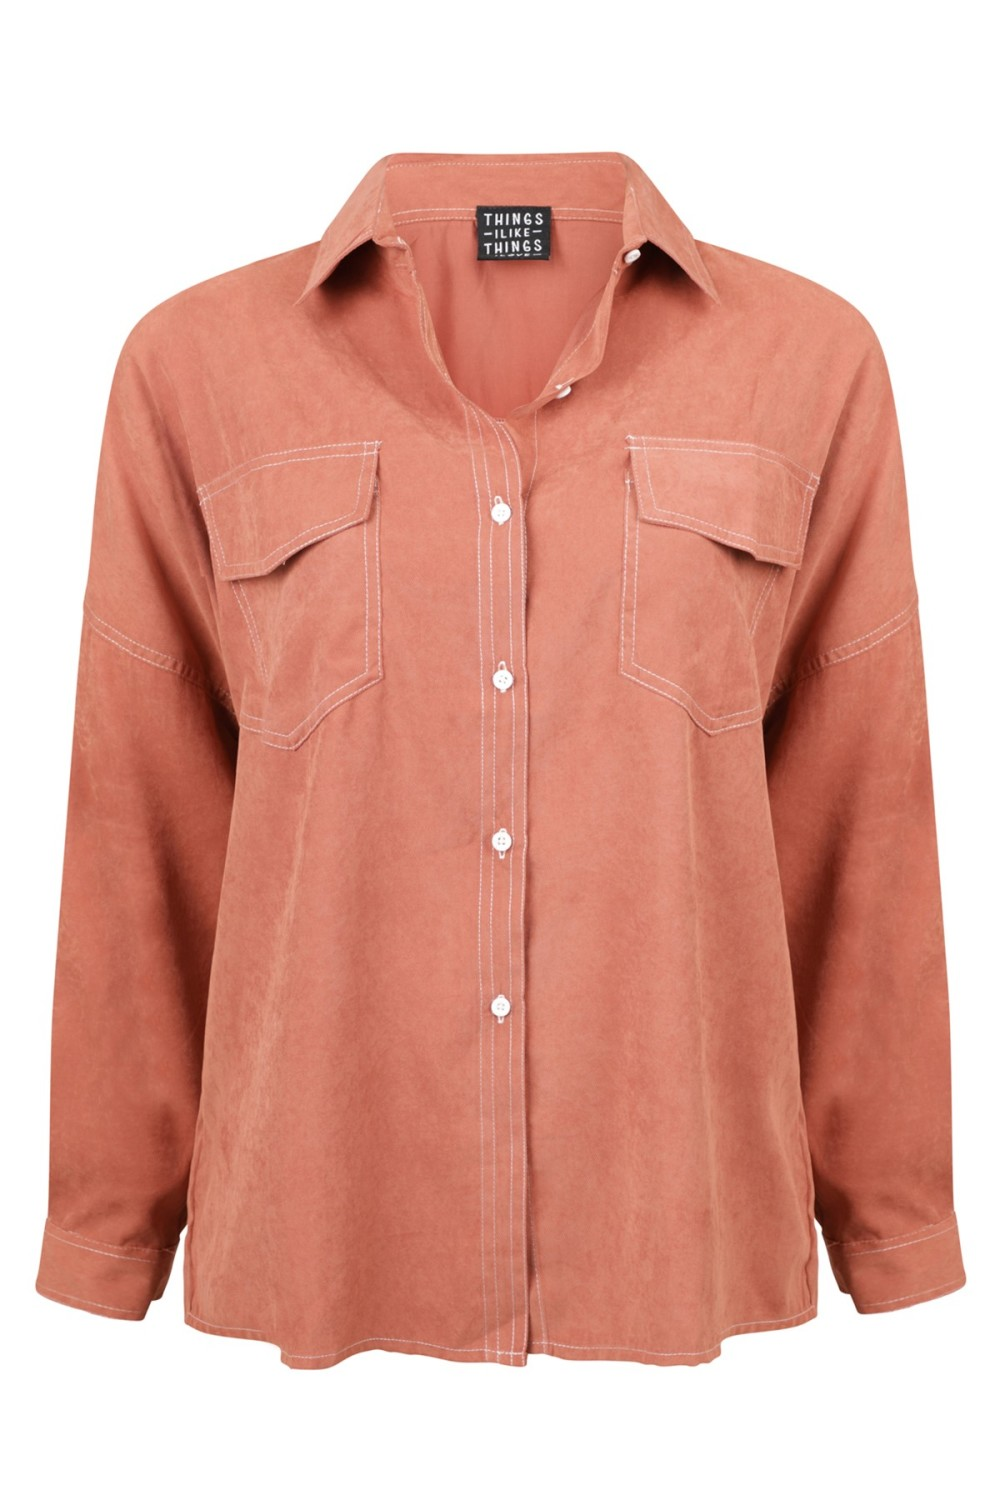 Things I Like Things I Love Blouse Bruin QUIN